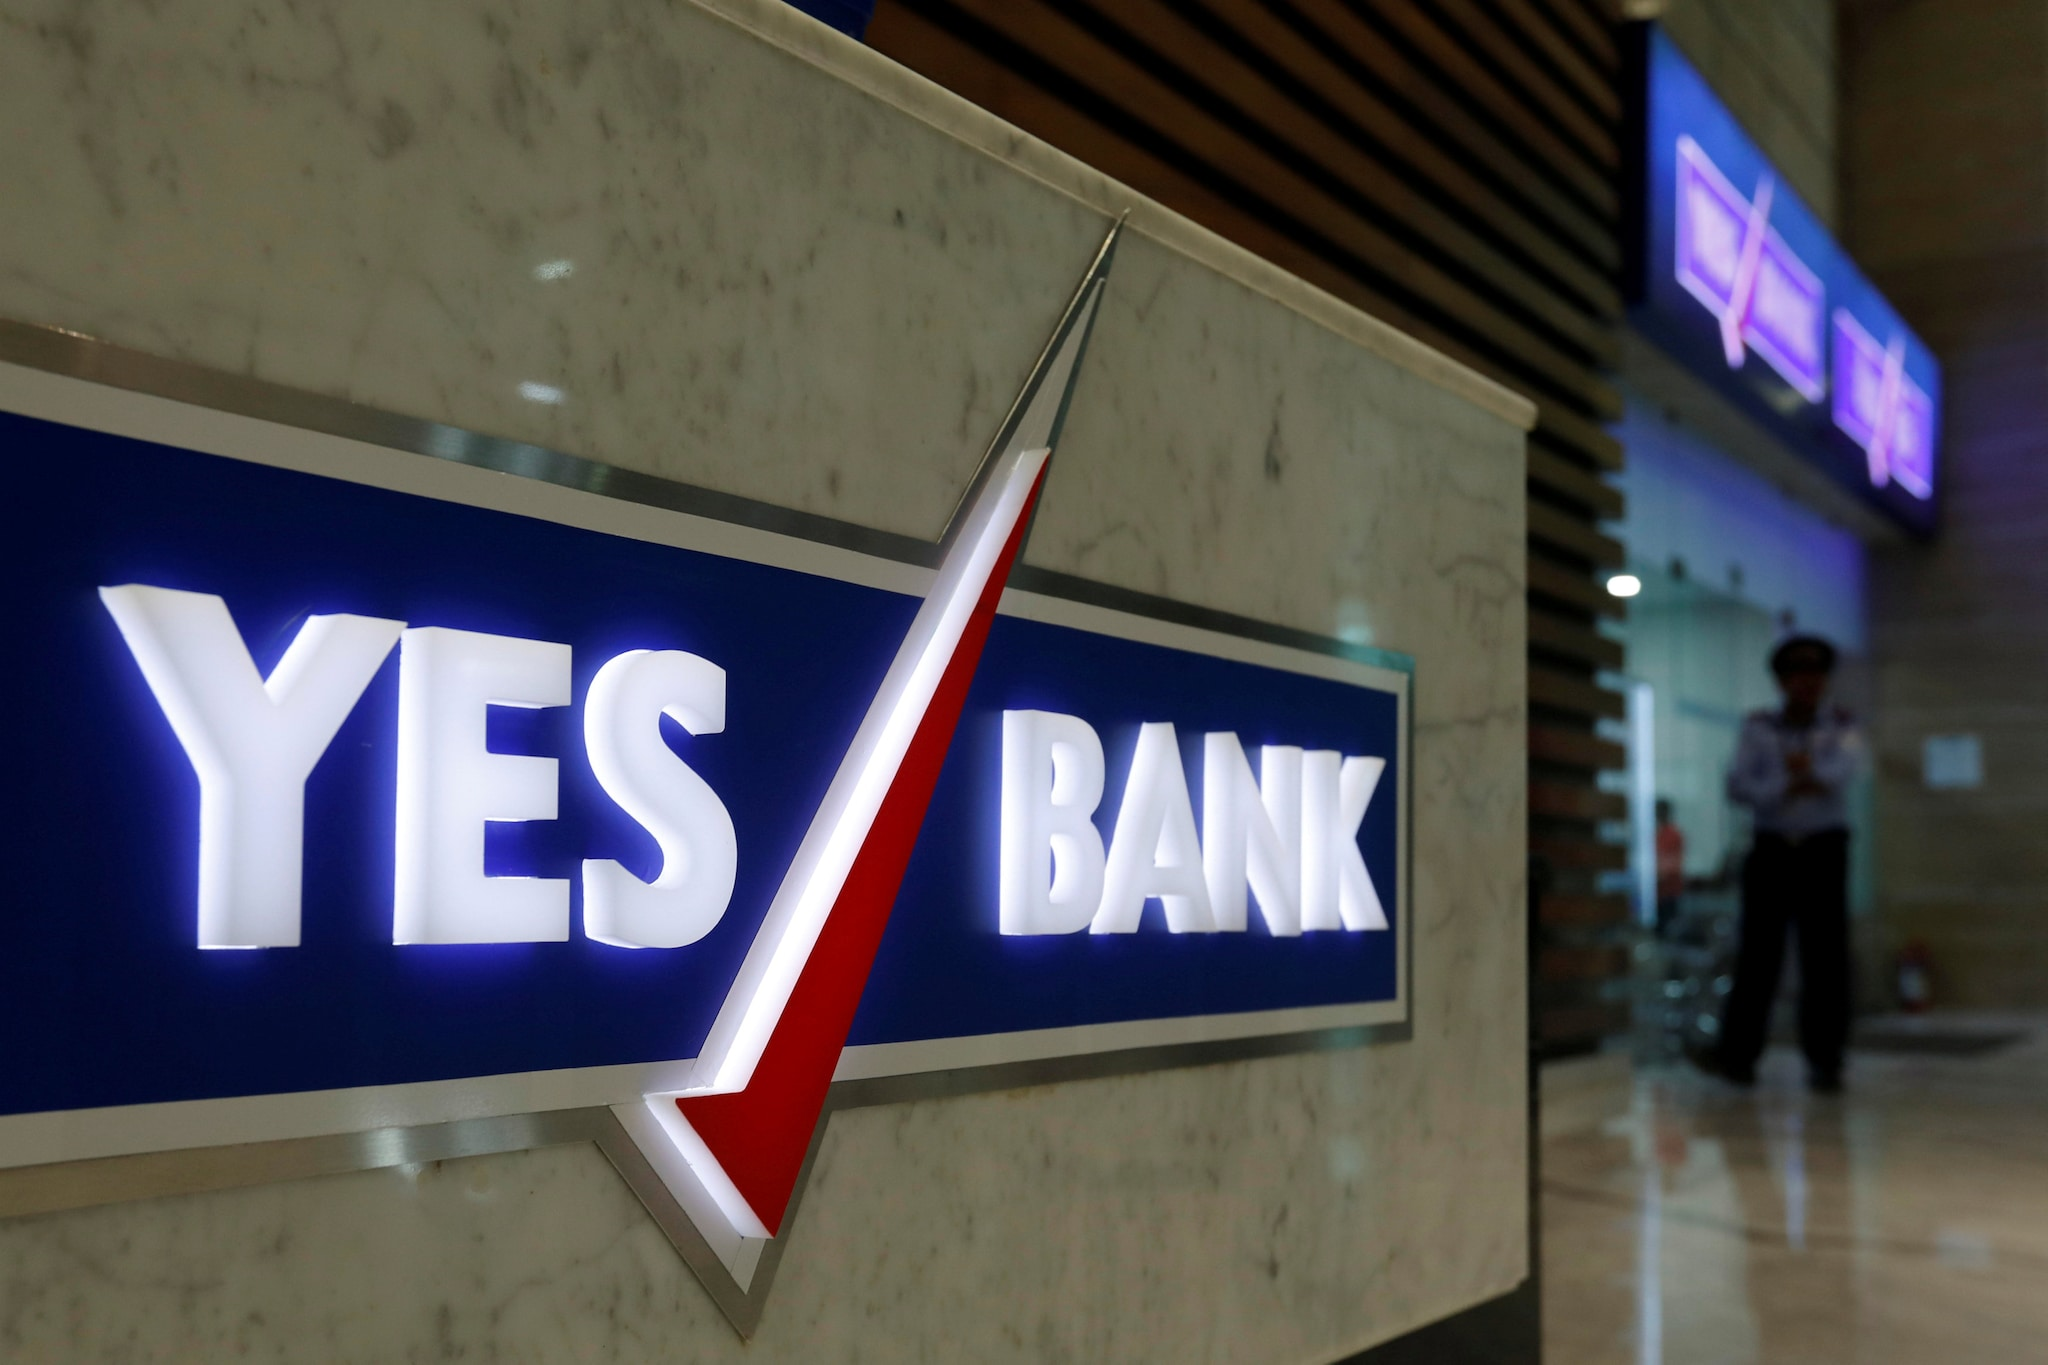 YES Bank: The Reserve Bank of India has imposed a penalty of Rs 11.25 lakh on it for violating money transfer norms. Icra has downgraded the bank's long term rating to AA- from AA. (Image: Reuters)